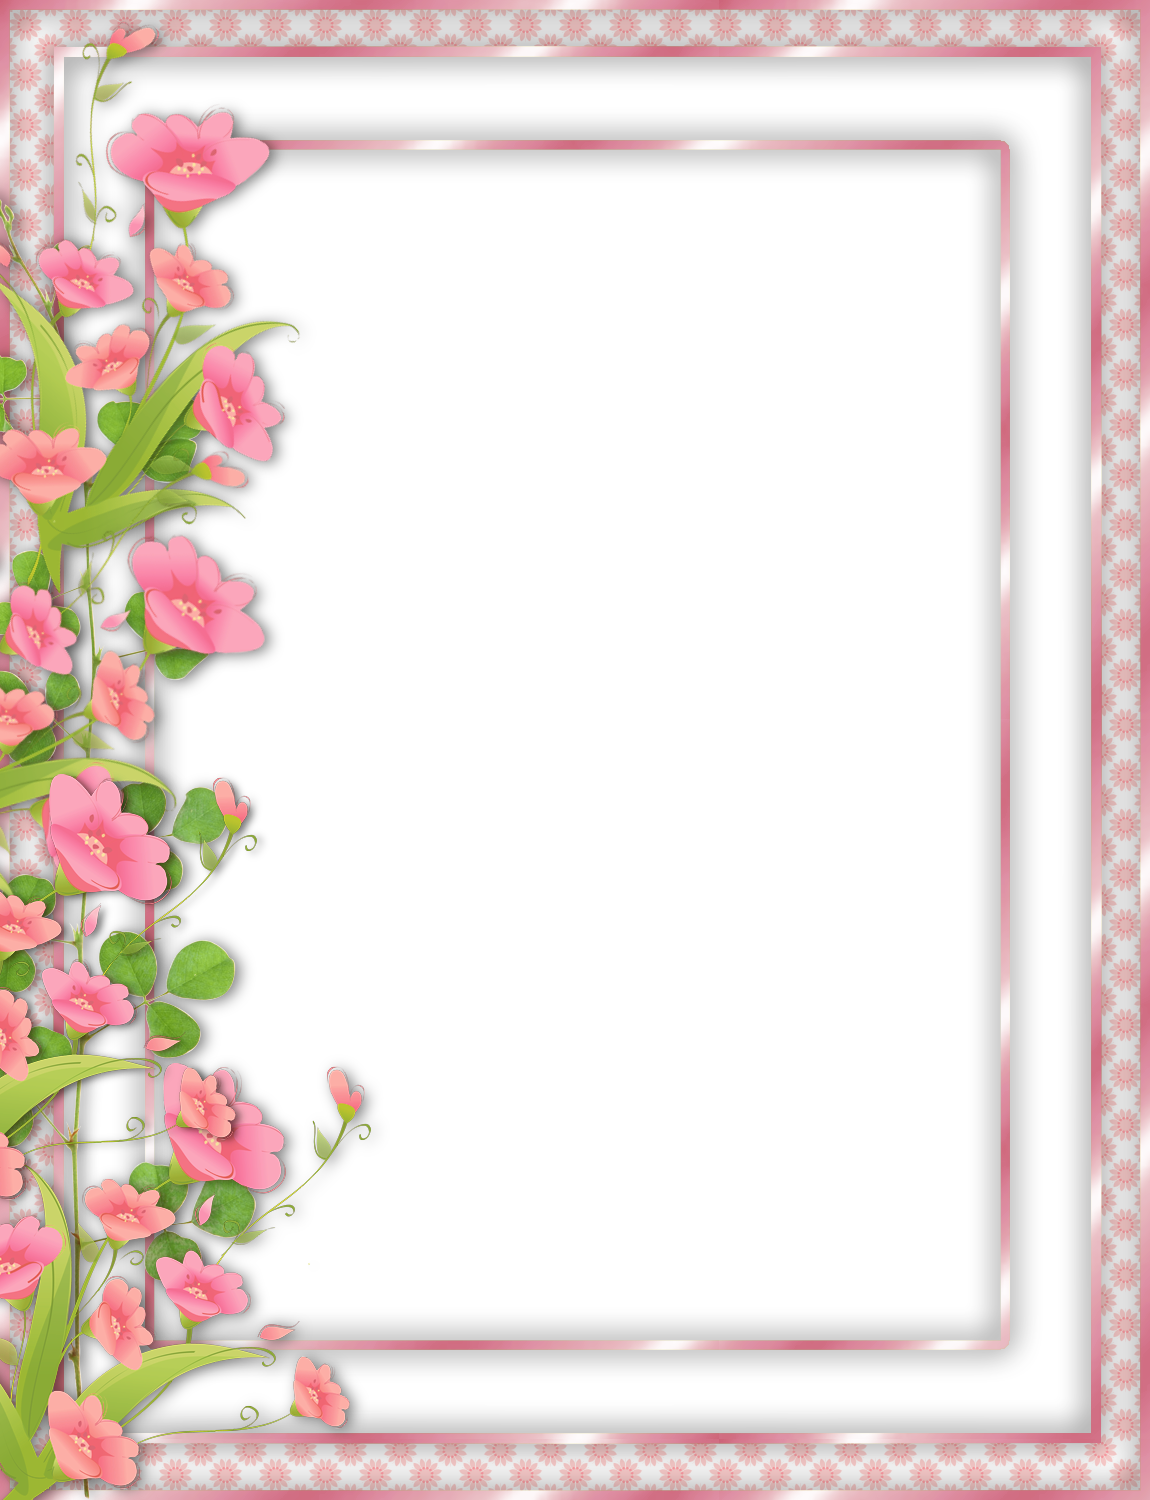 Pink Transparent PNG Frame with Flowers | border ...